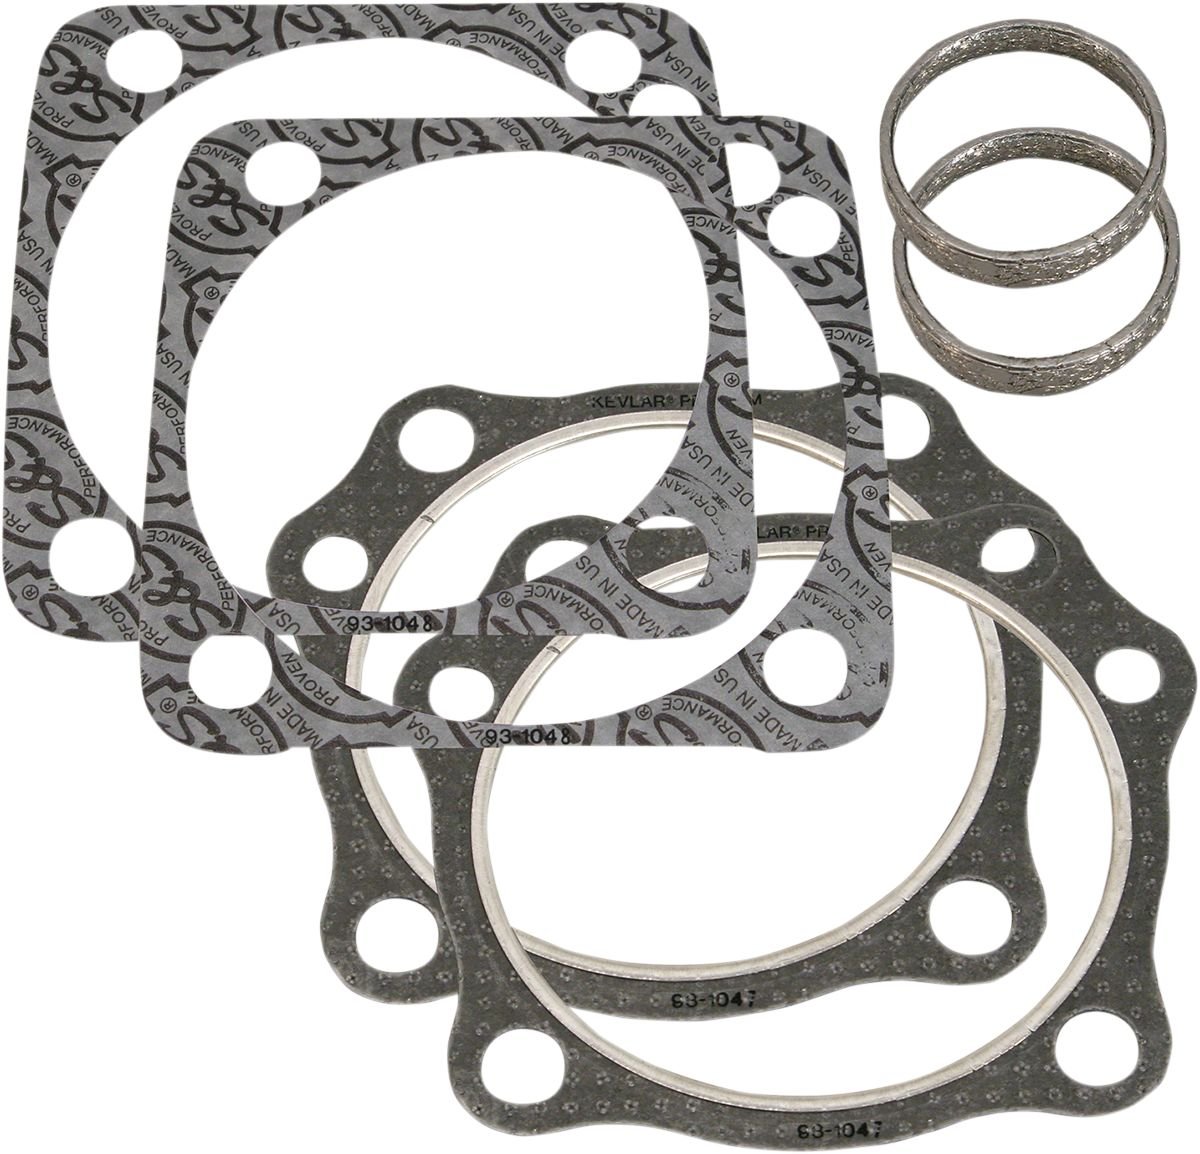 09344751 - S&S GASKET KIT TOPEND 4-1/8""